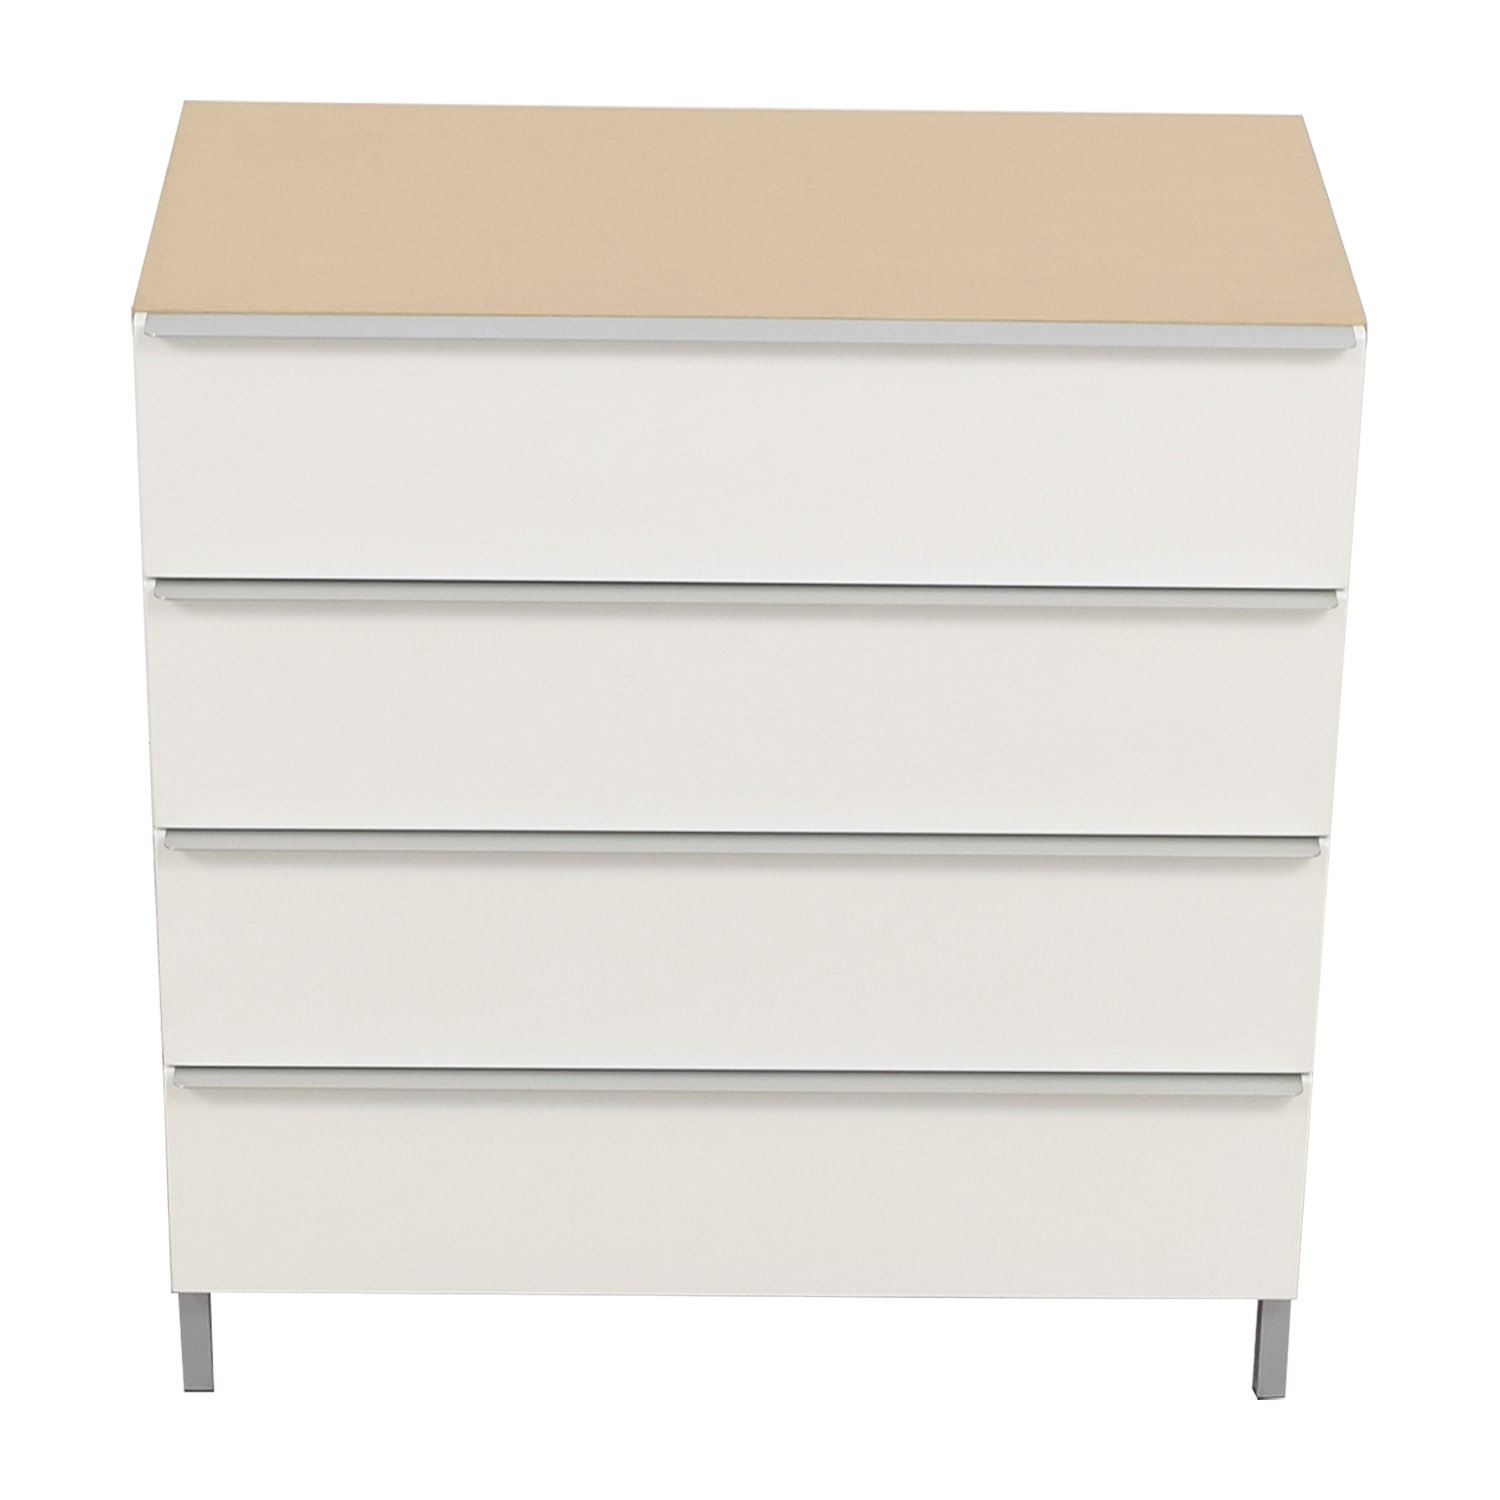 White and Tan Four-Drawer Chest of Drawers coupon